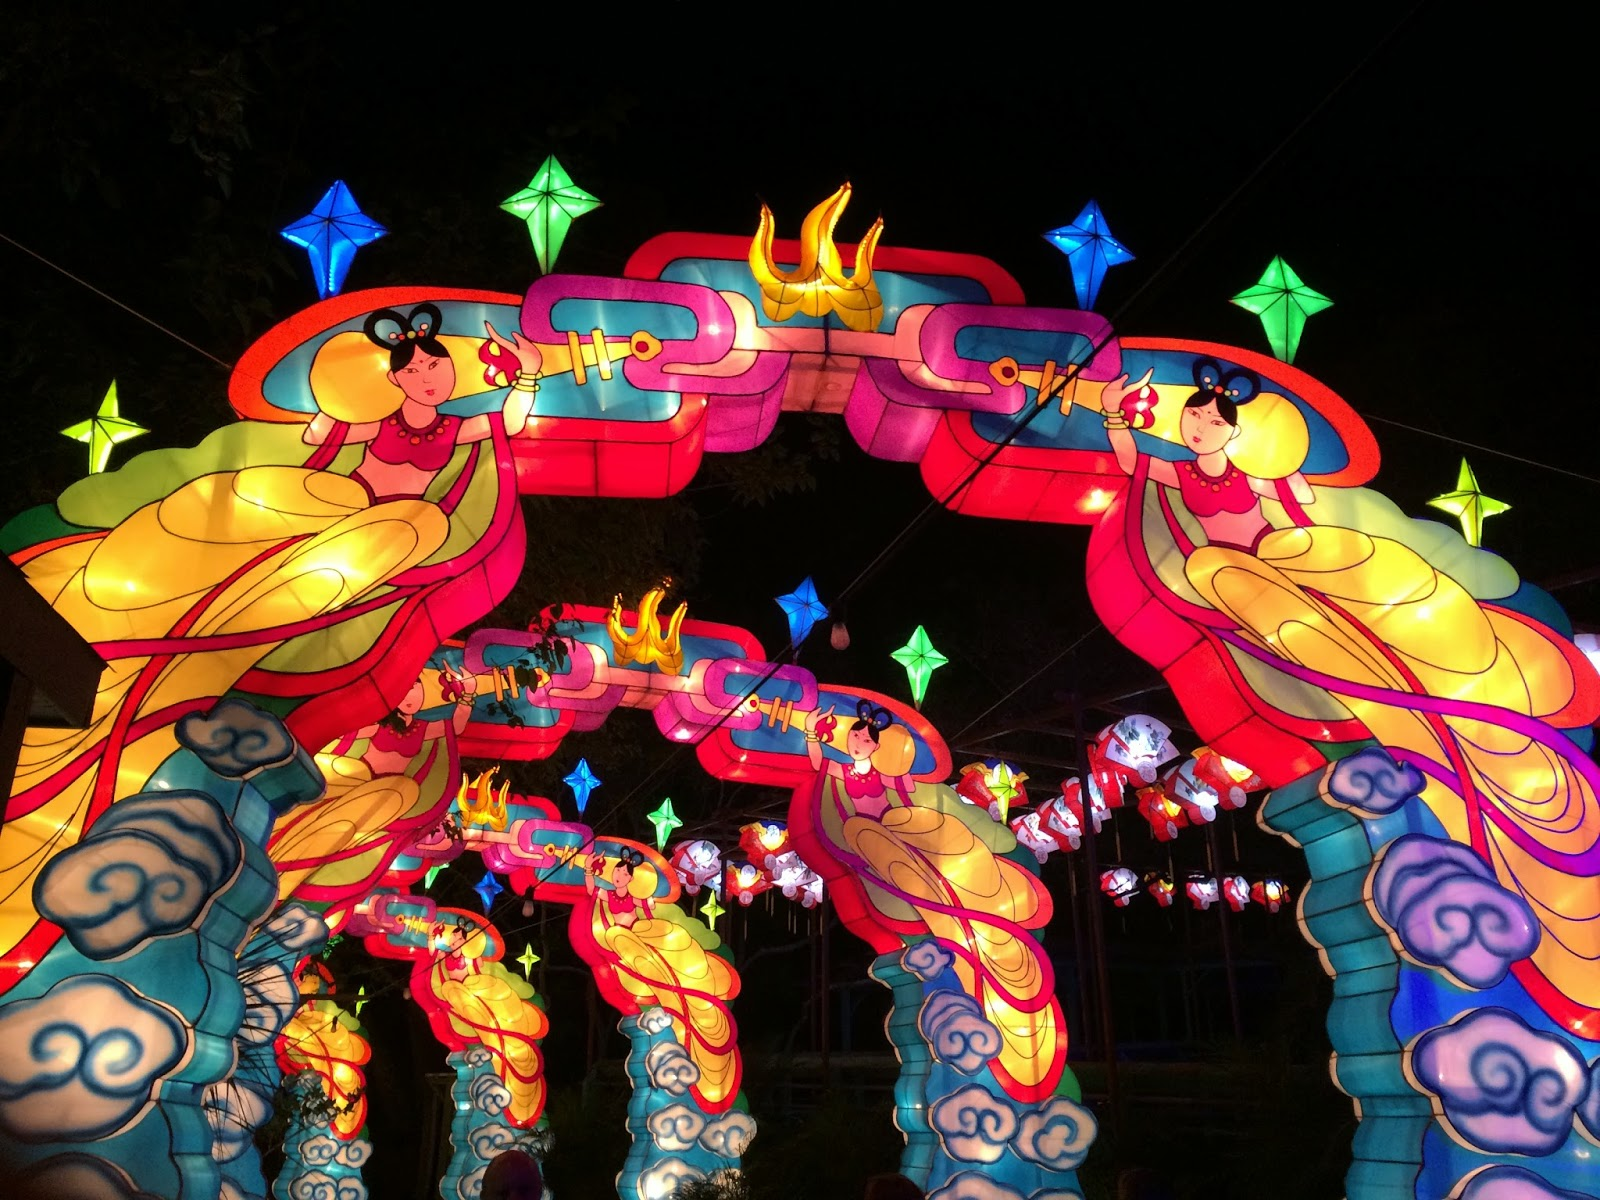 lowry park zoo zoominations chinese lantern festival